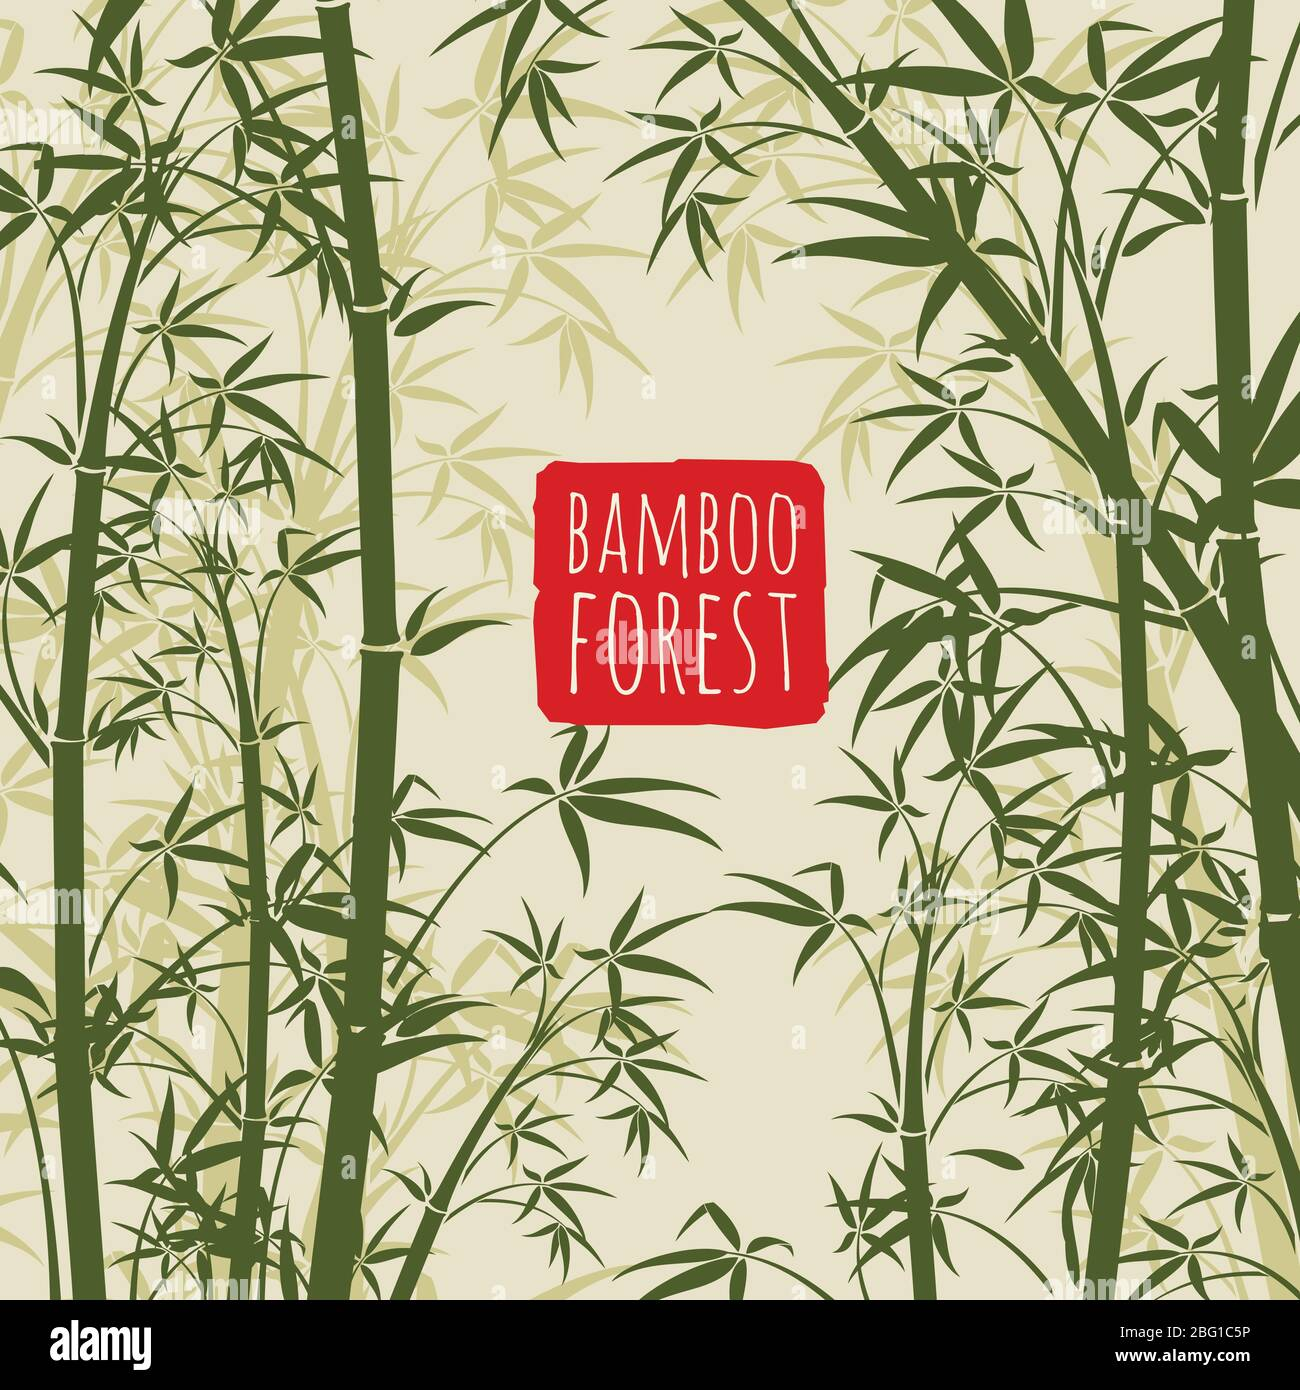 Chinese Bamboo Forest Stock Vector Images Alamy